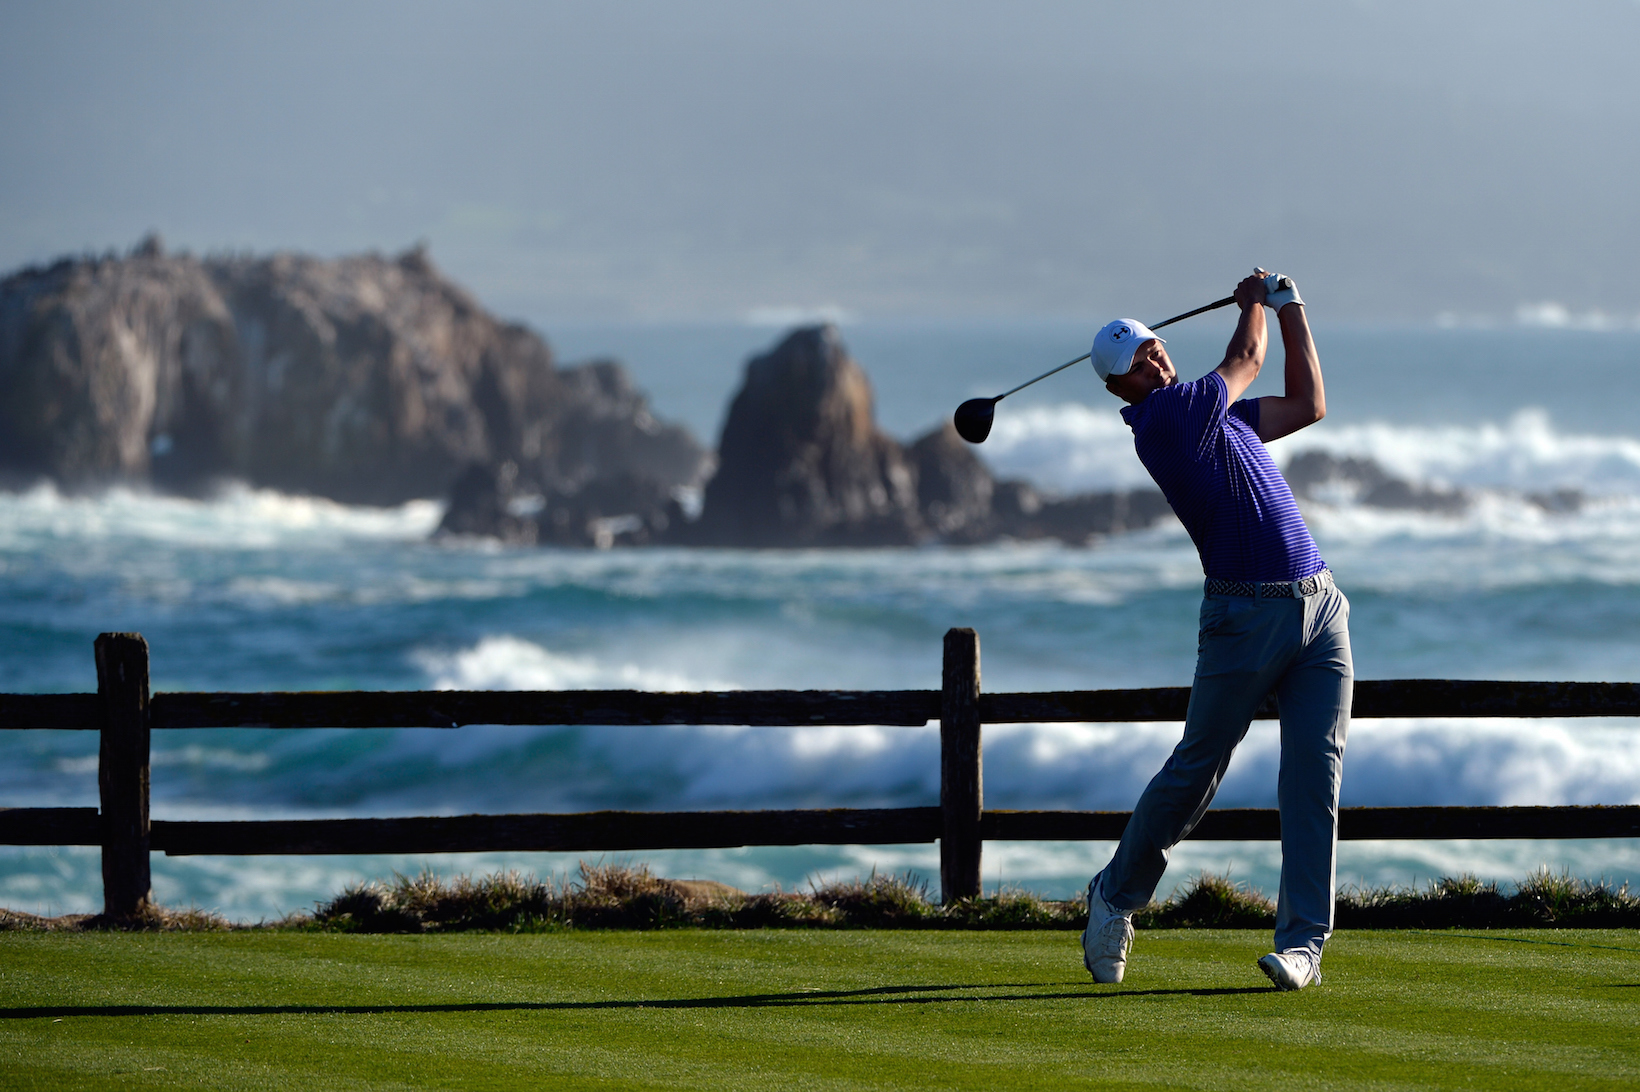 at t pebble beach pro am 2016 round 3 tee shot. Black Bedroom Furniture Sets. Home Design Ideas